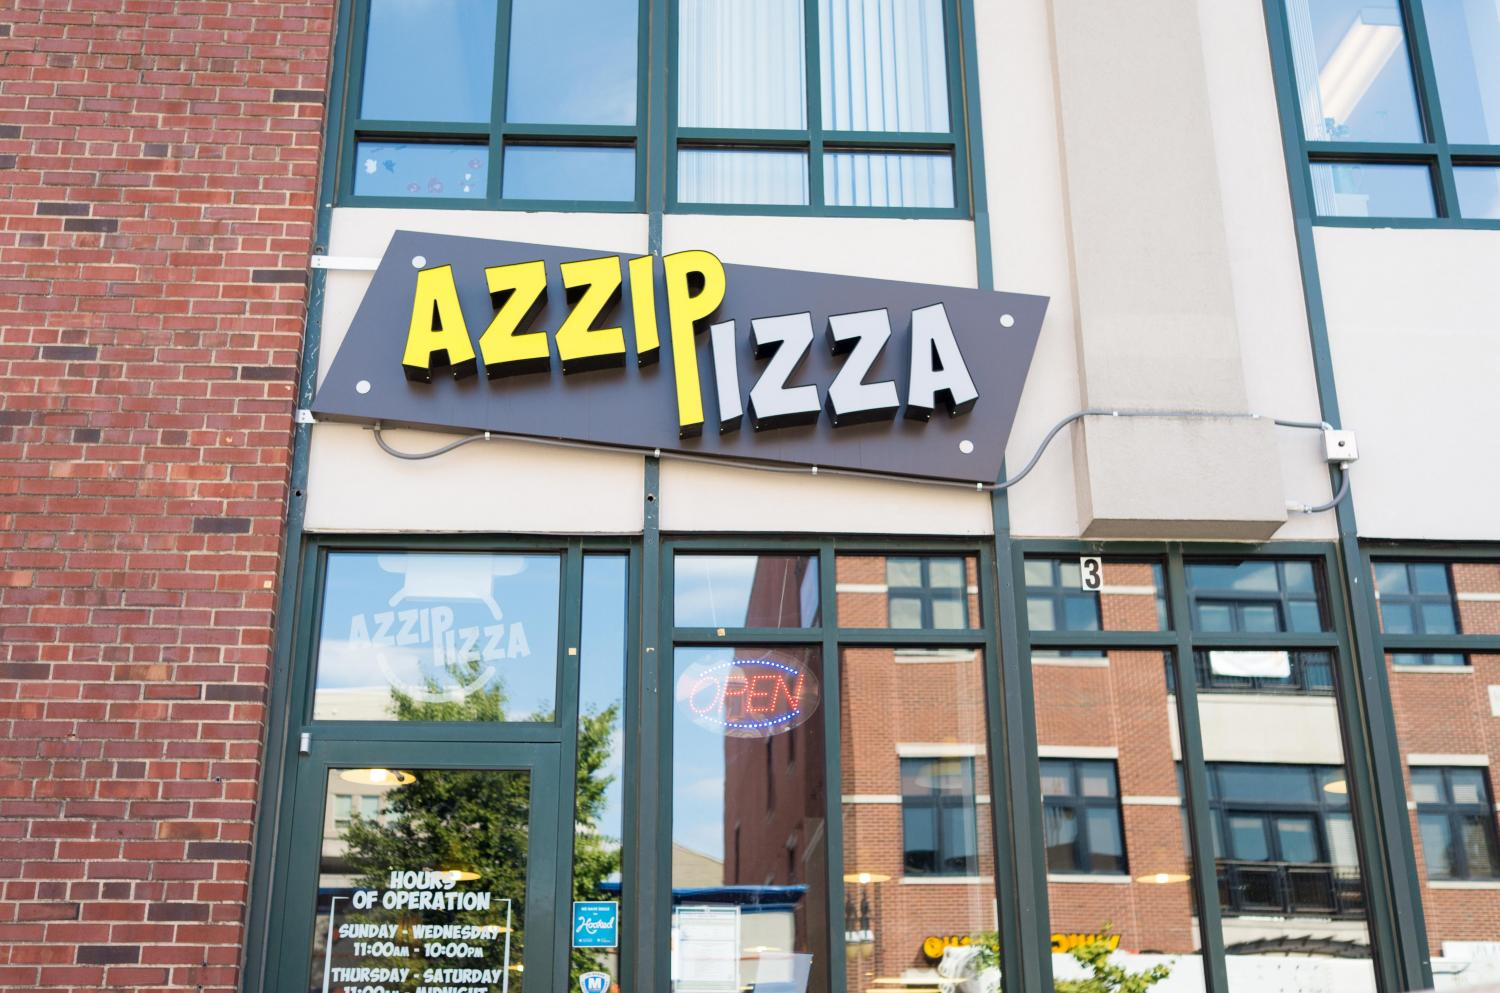 The Azzip Pizza located at 505 East Green St. This location will be permanently closed as of Saturday.